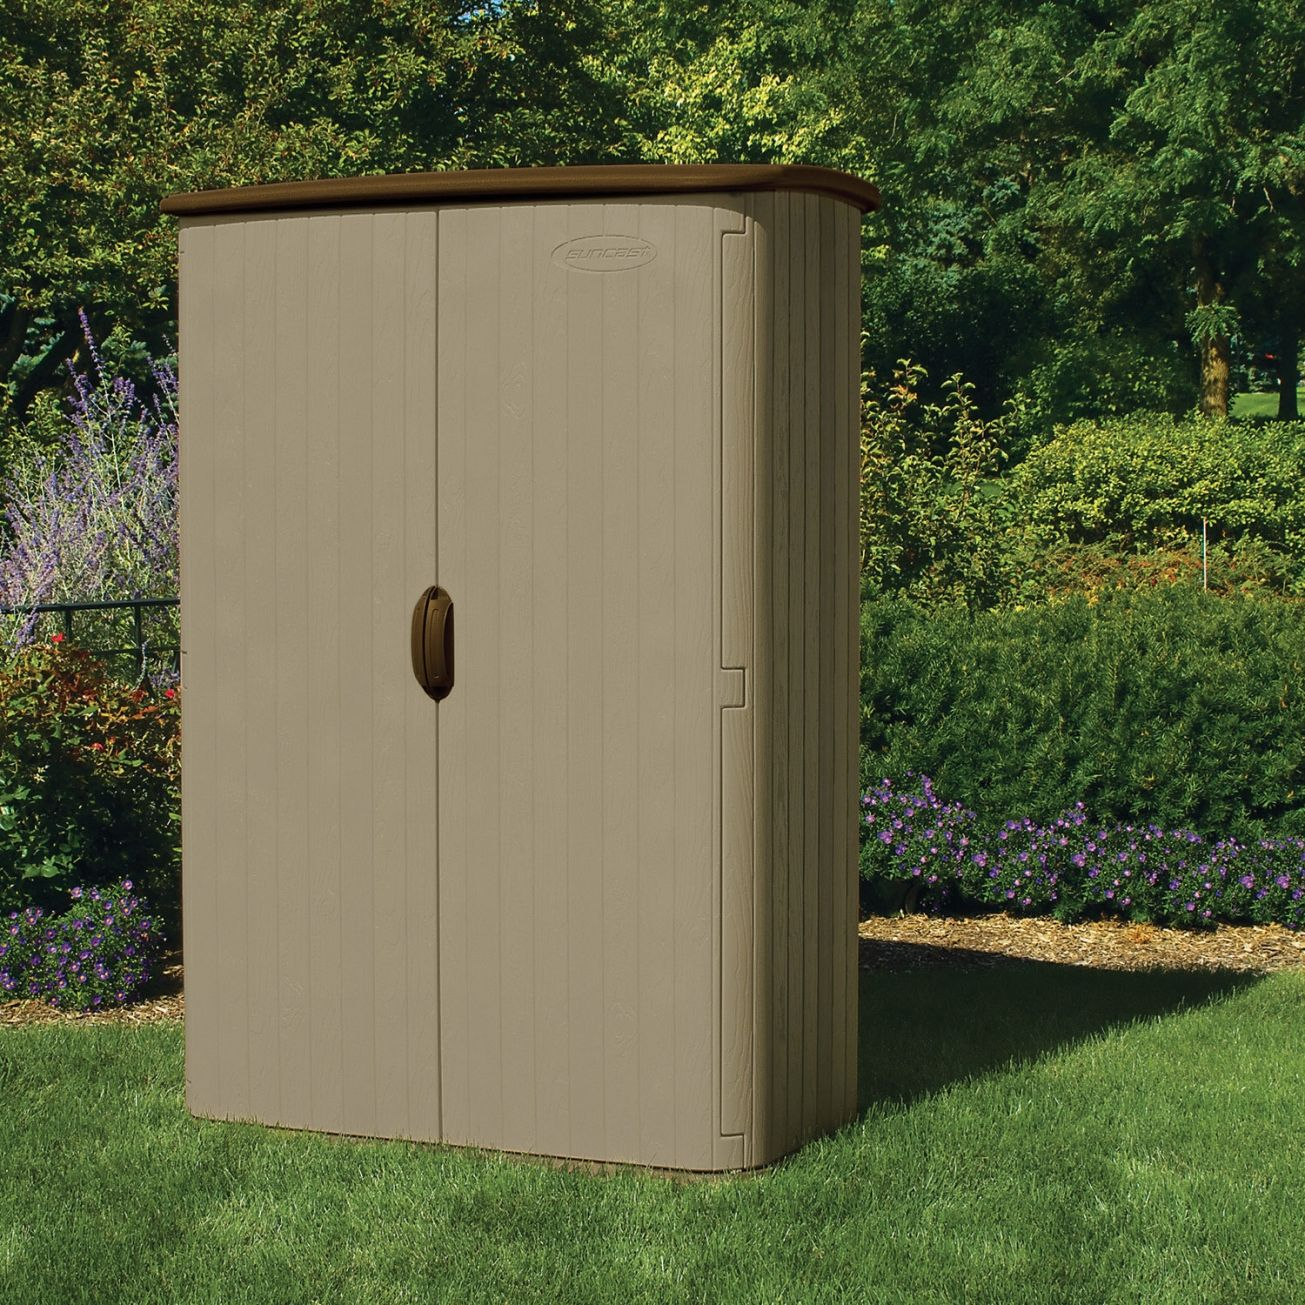 suncast 52cu ft large vertical shed bms4500 storage sheds ace hardware - Garden Sheds Menards